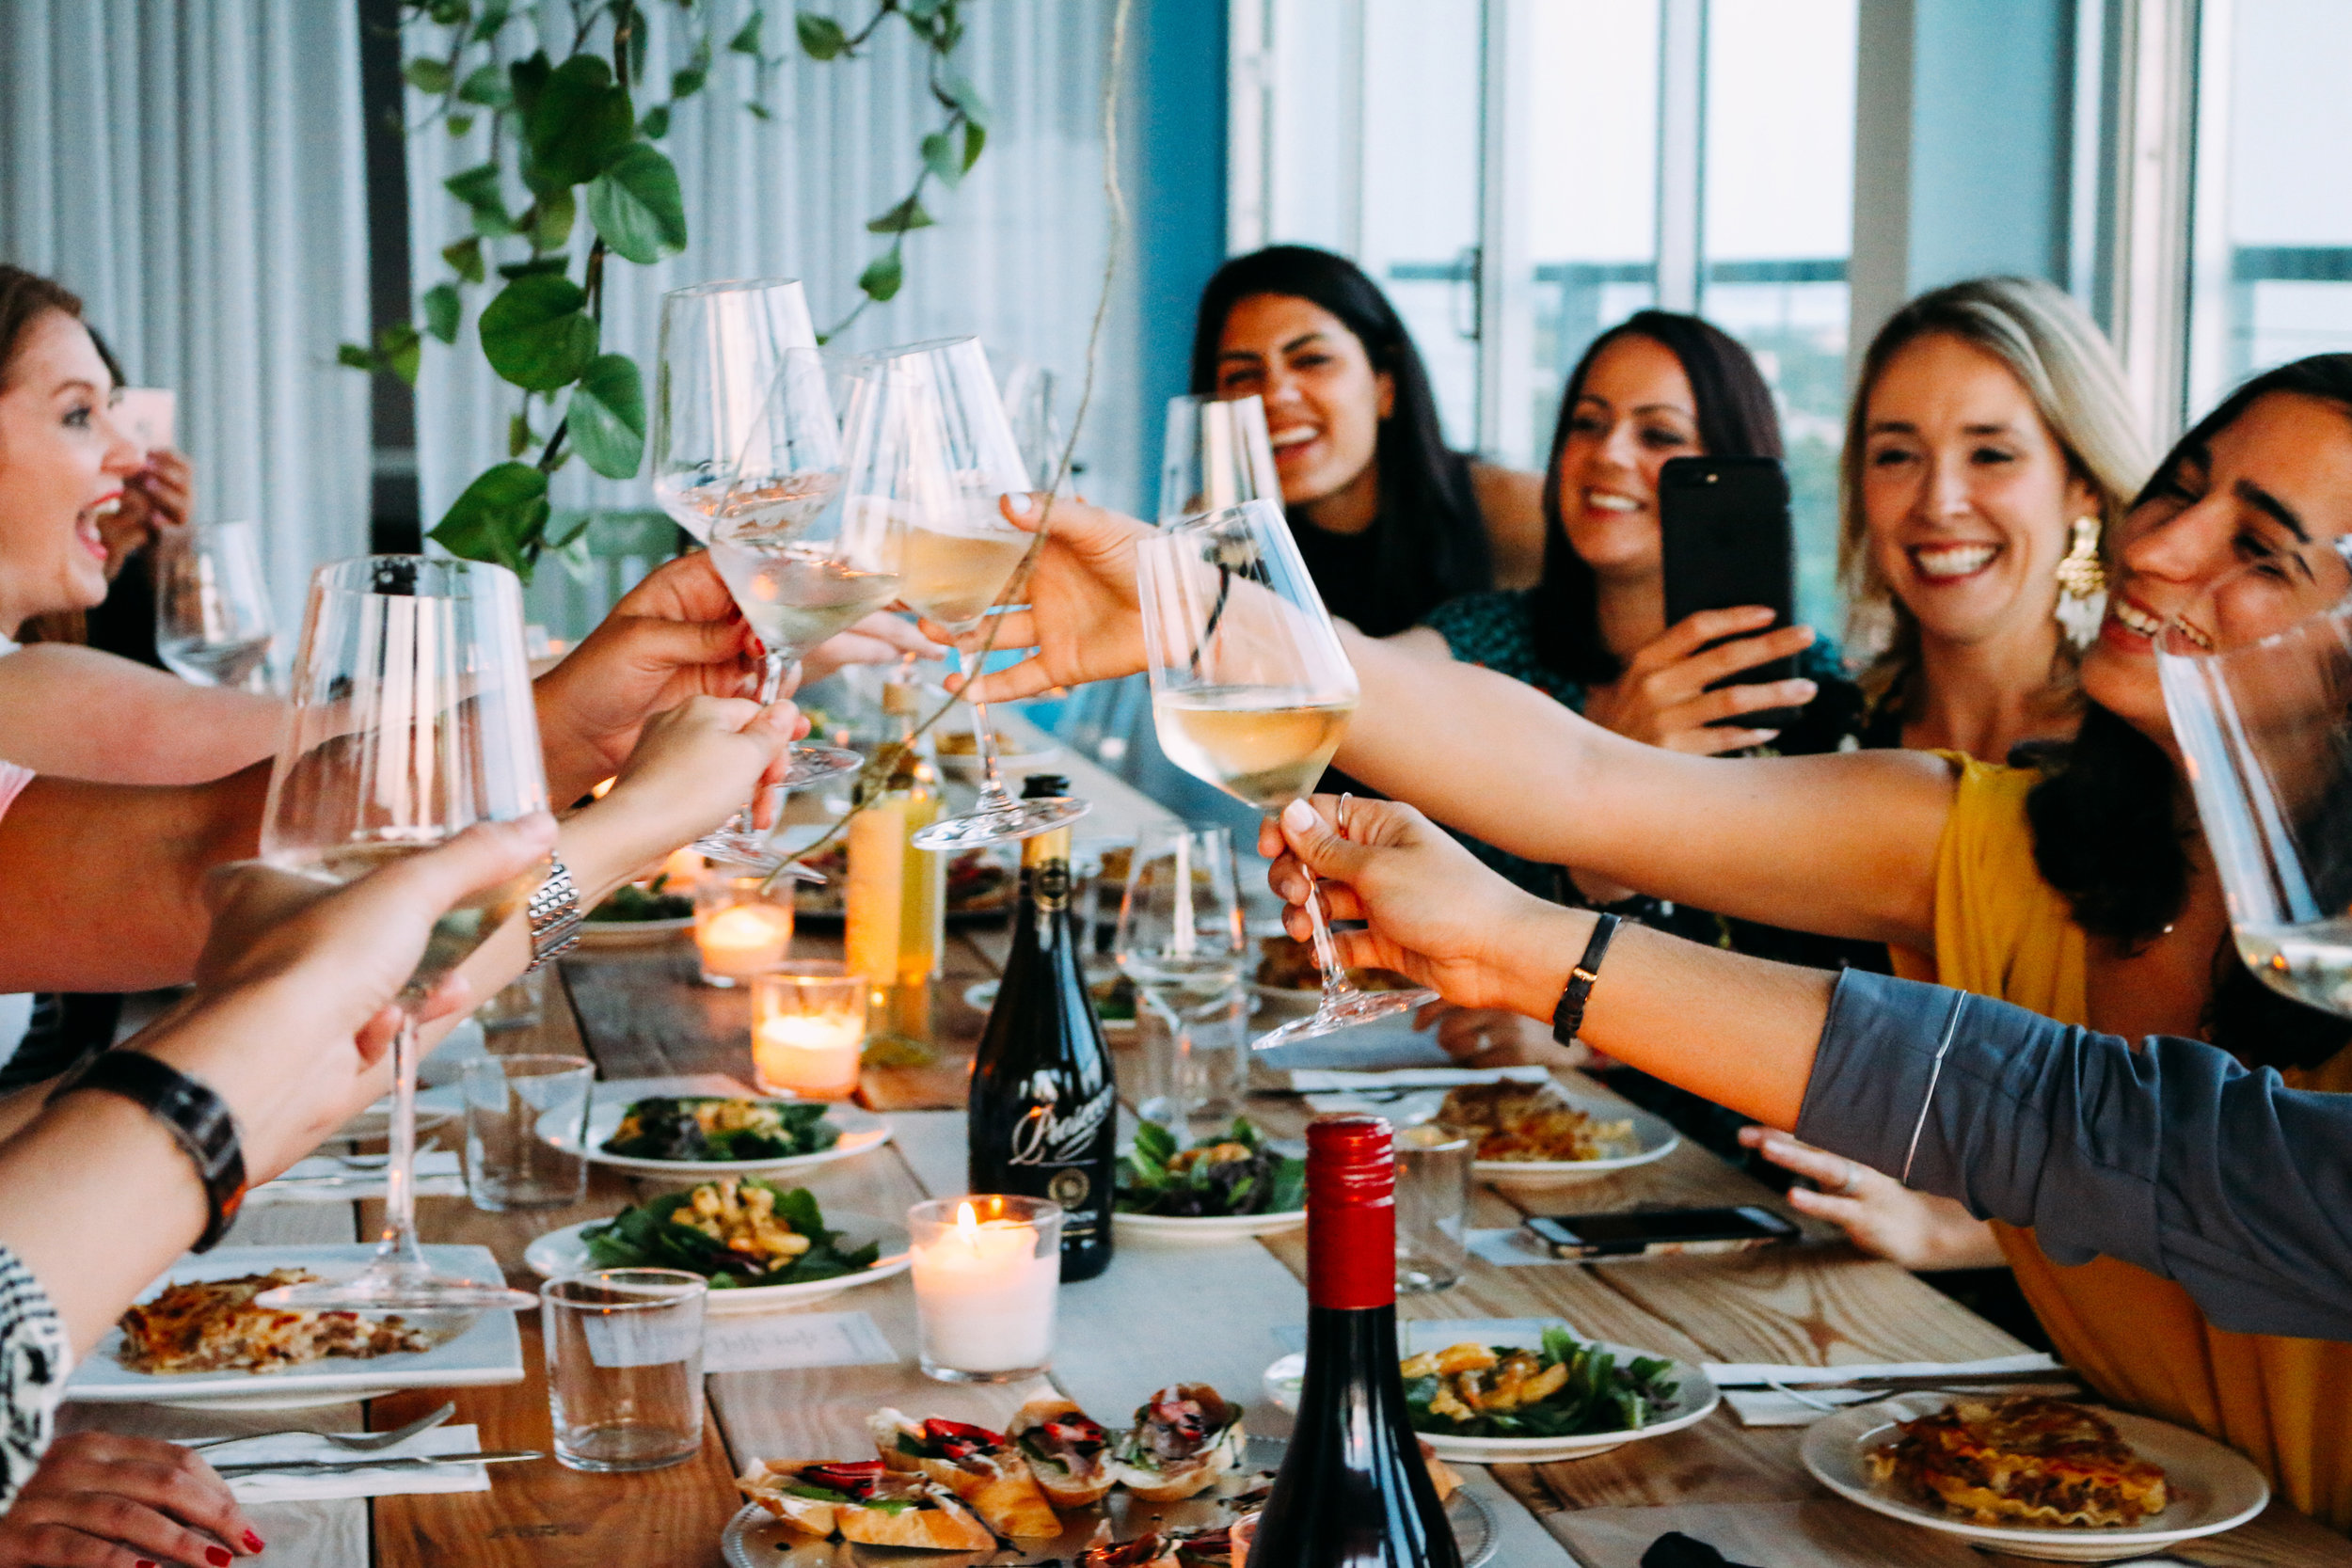 """Women Who Wine """"Uncorked Conversations"""" at The Loft 305 4.27.17"""